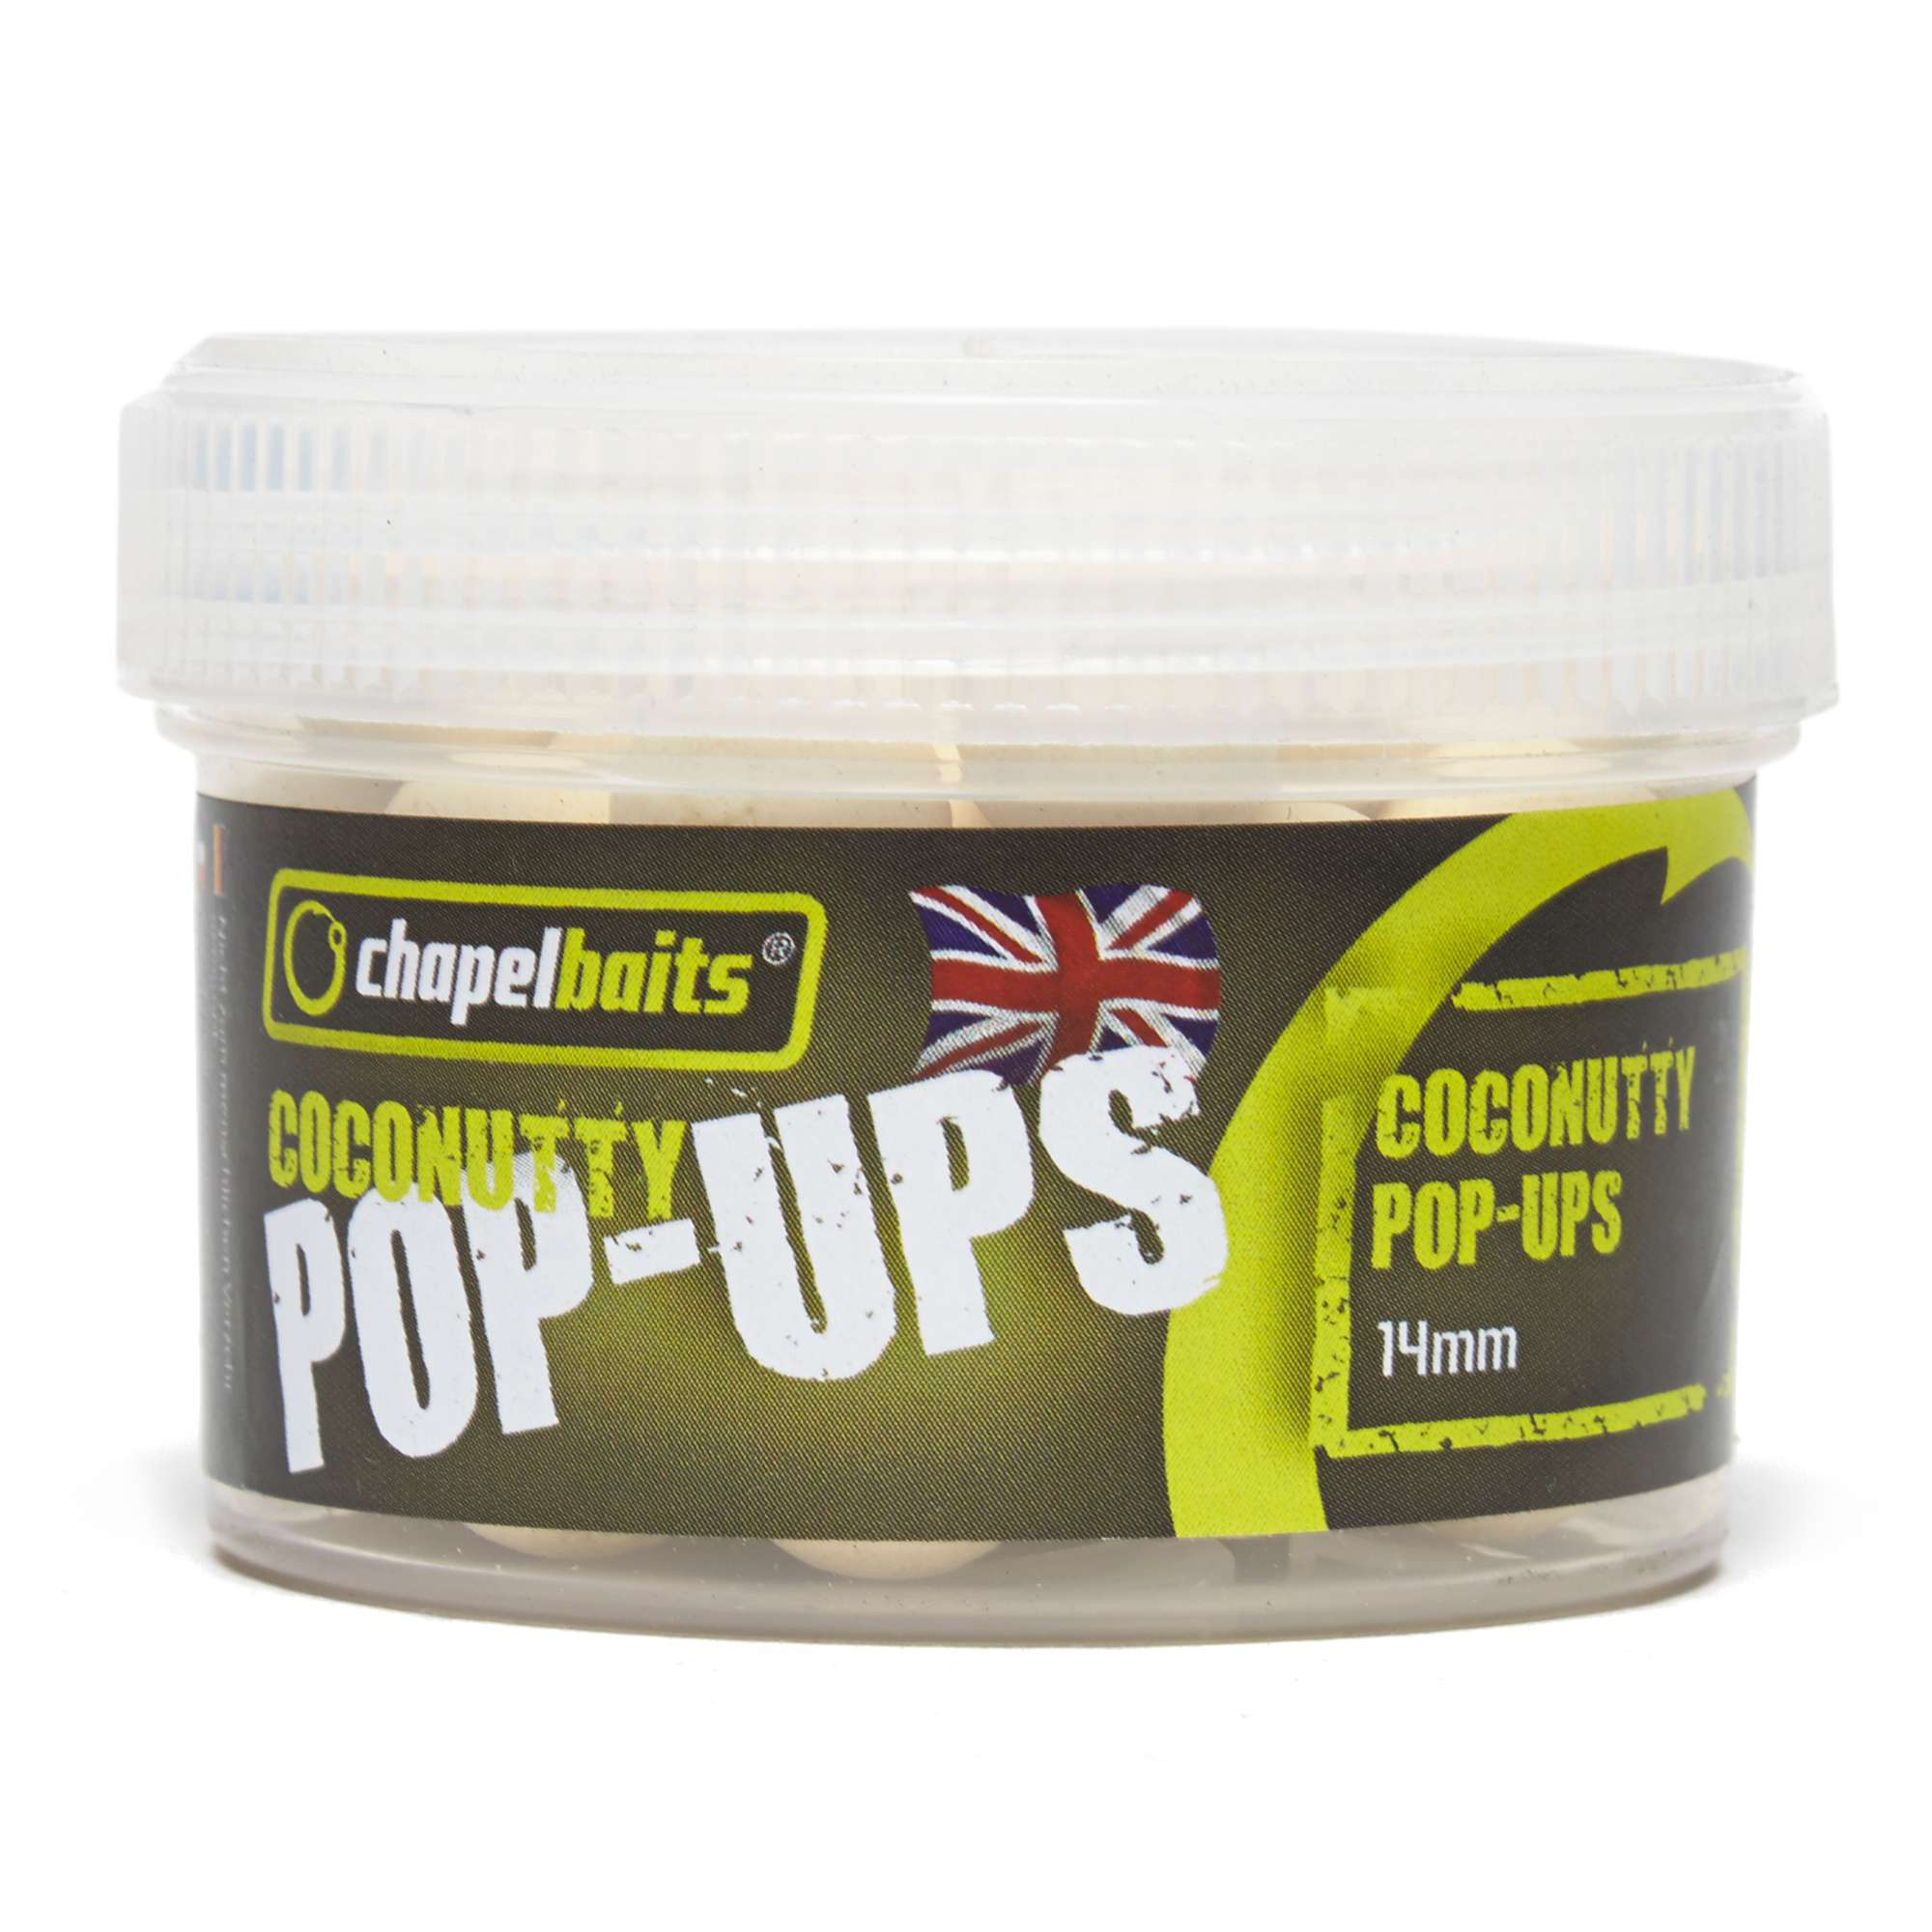 CHAPEL BAITS Coconutty Pop Ups Session Pack, 14mm